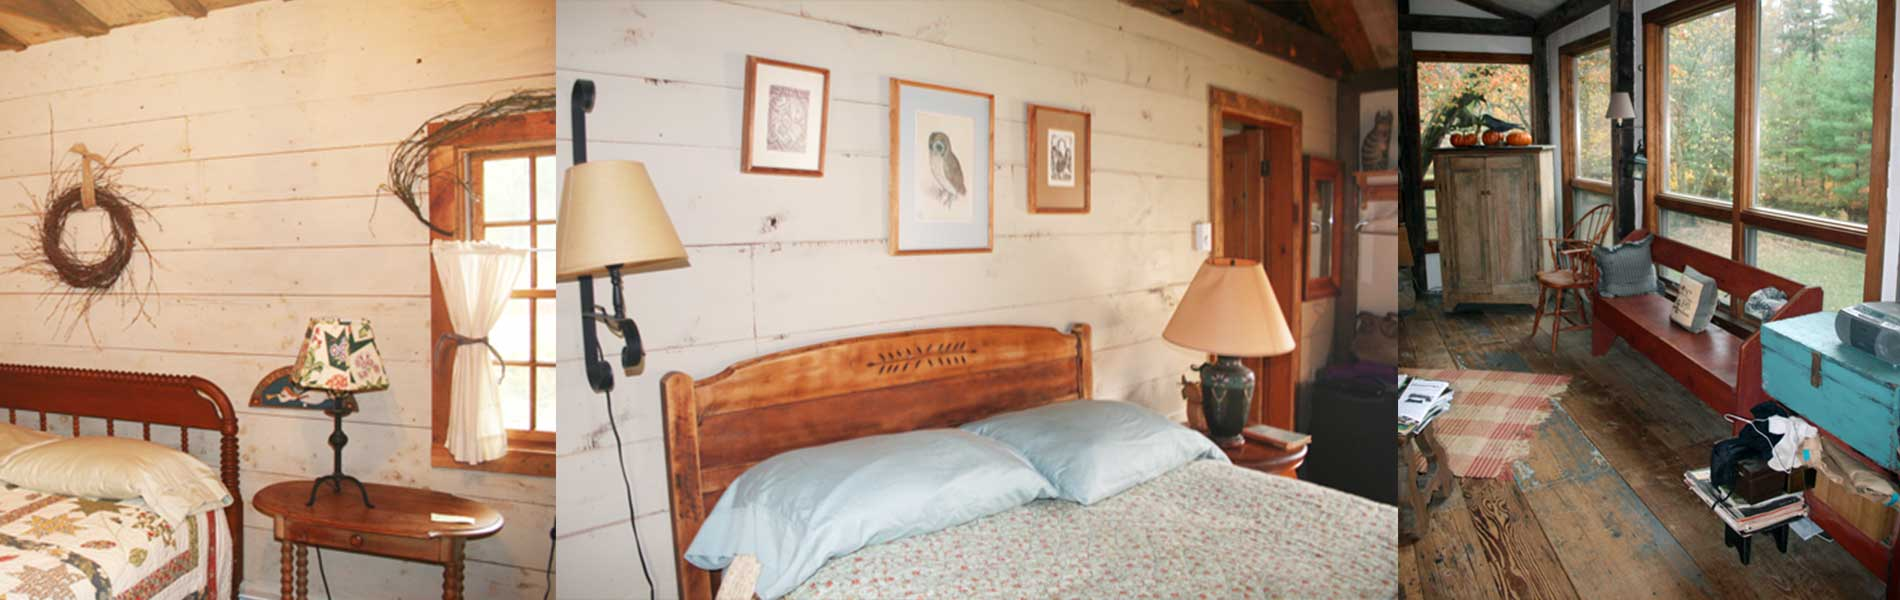 Warm Accommodations, New England Charm